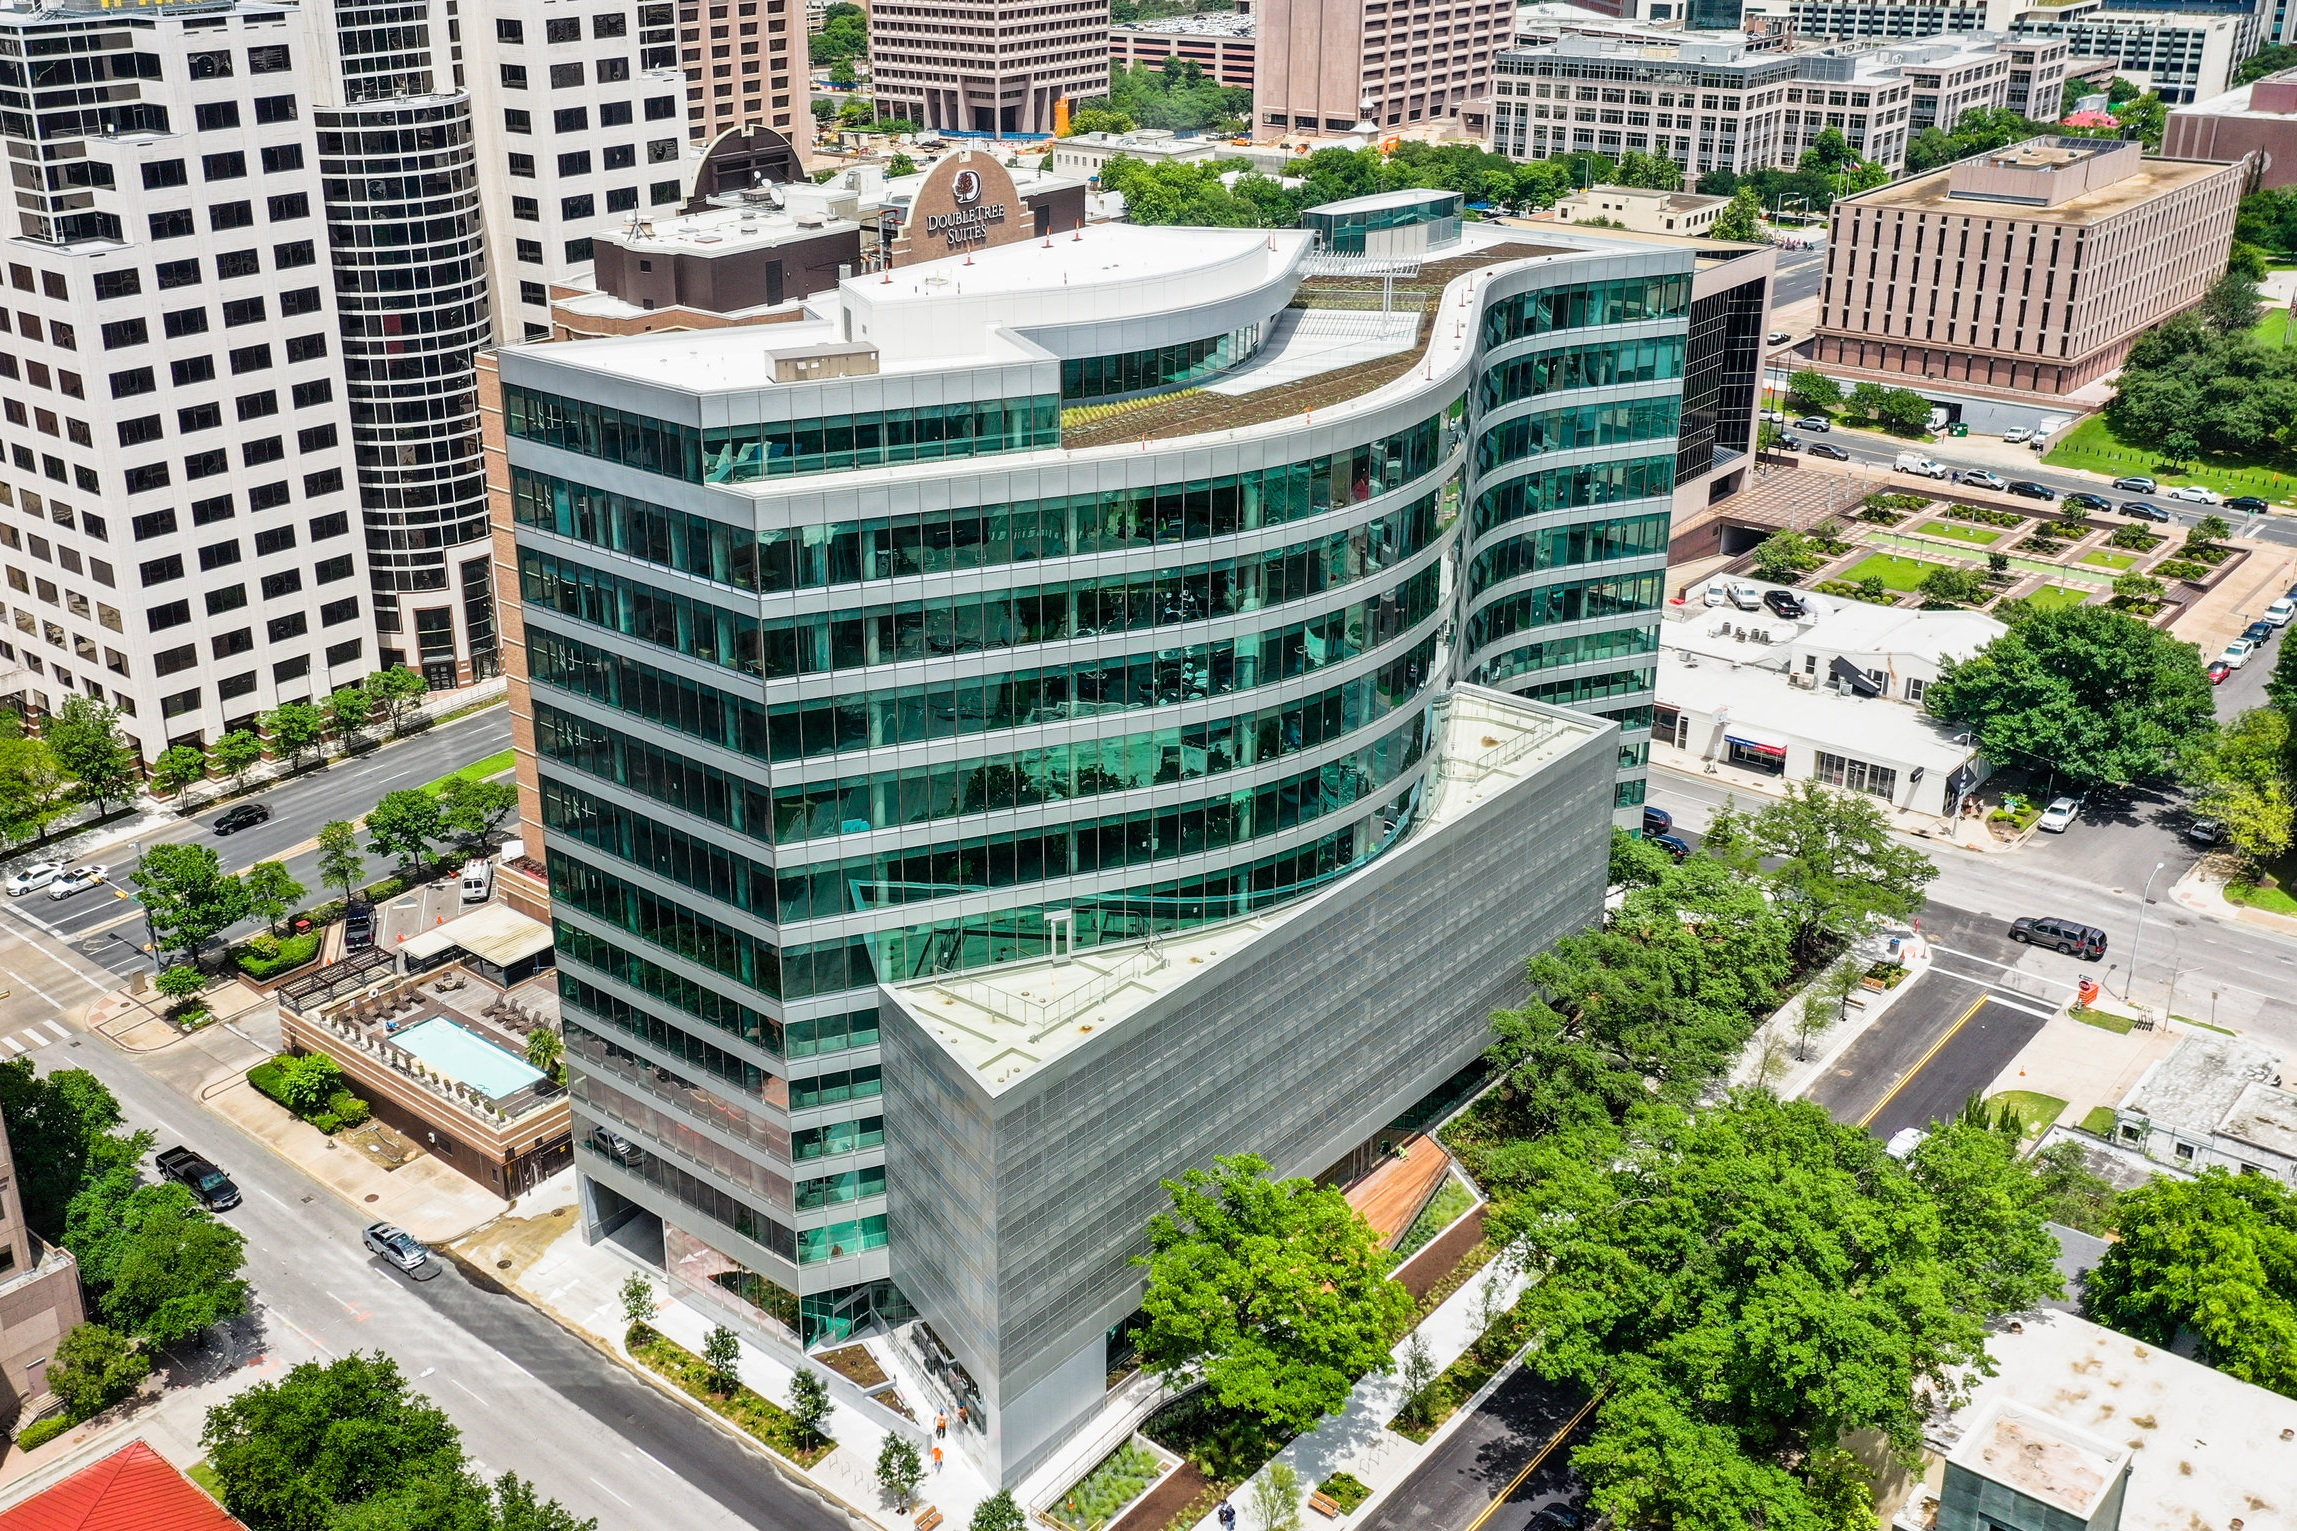 Aerial Perspective View of the SXSW Center.